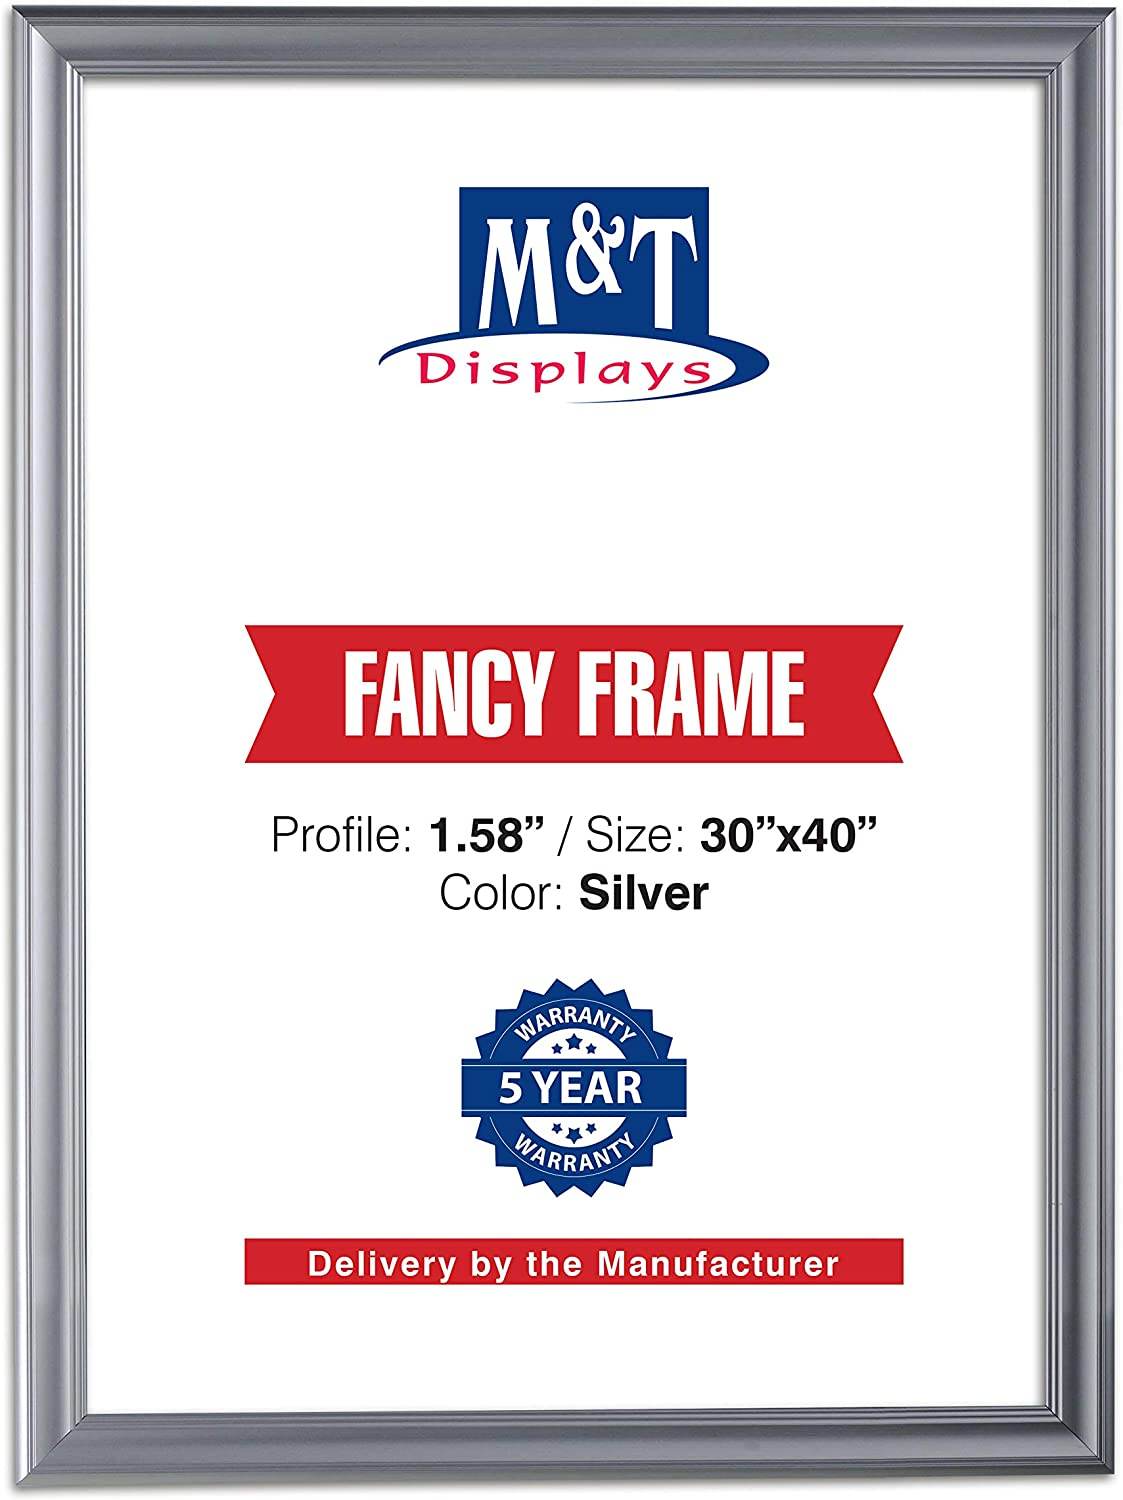 M/&T Displays Black 36x48 Picture Frame Made of 1.58 inches Aluminum Profile Front Loading Wall Mounting Fancy Snap Frame Display for Poster or Document with Mitered Corner